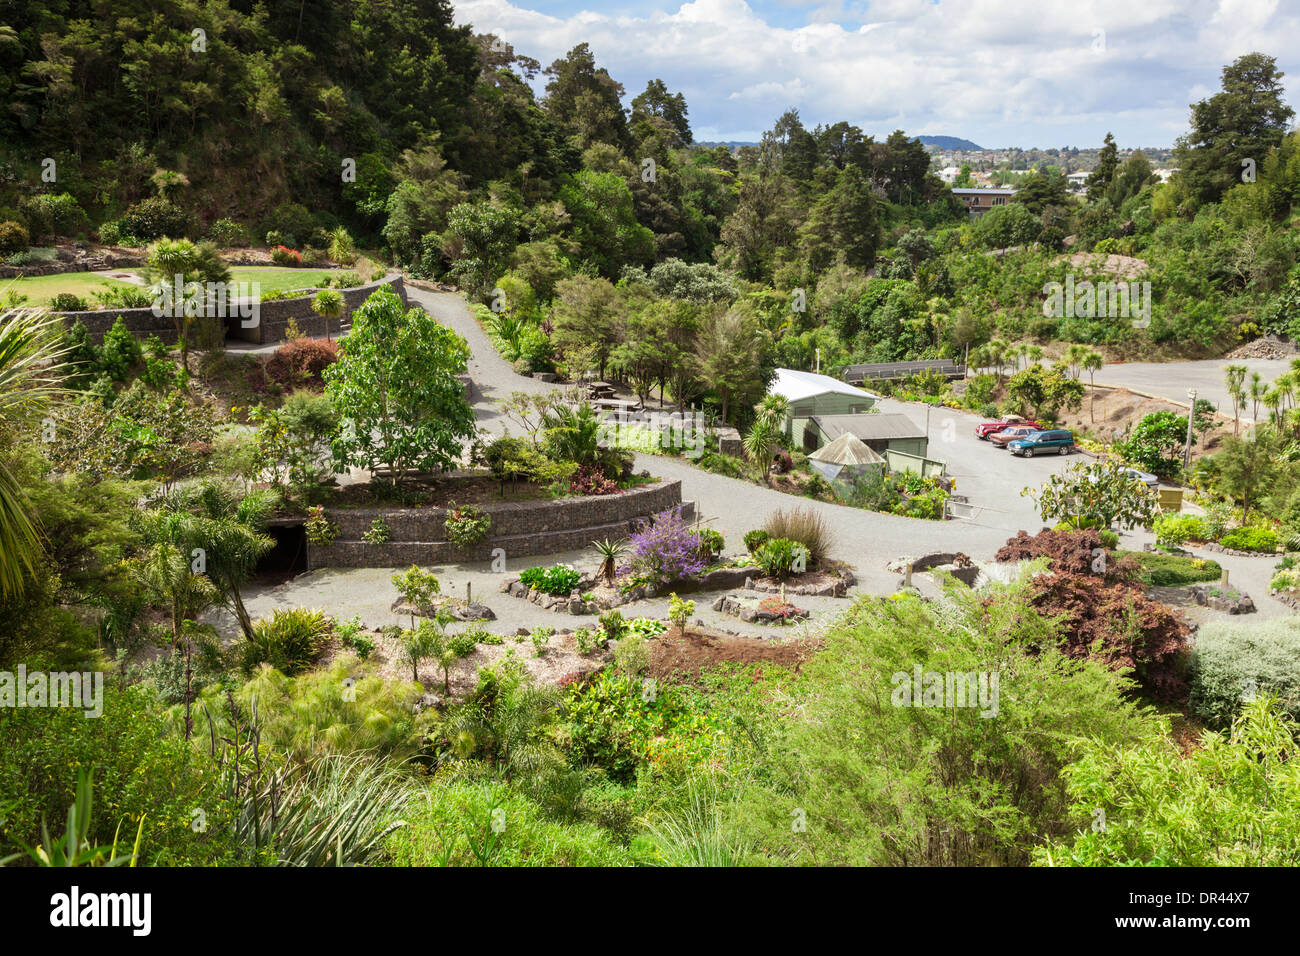 Whangarei Quarry Gardens, Northland, New Zealand. - Stock Image